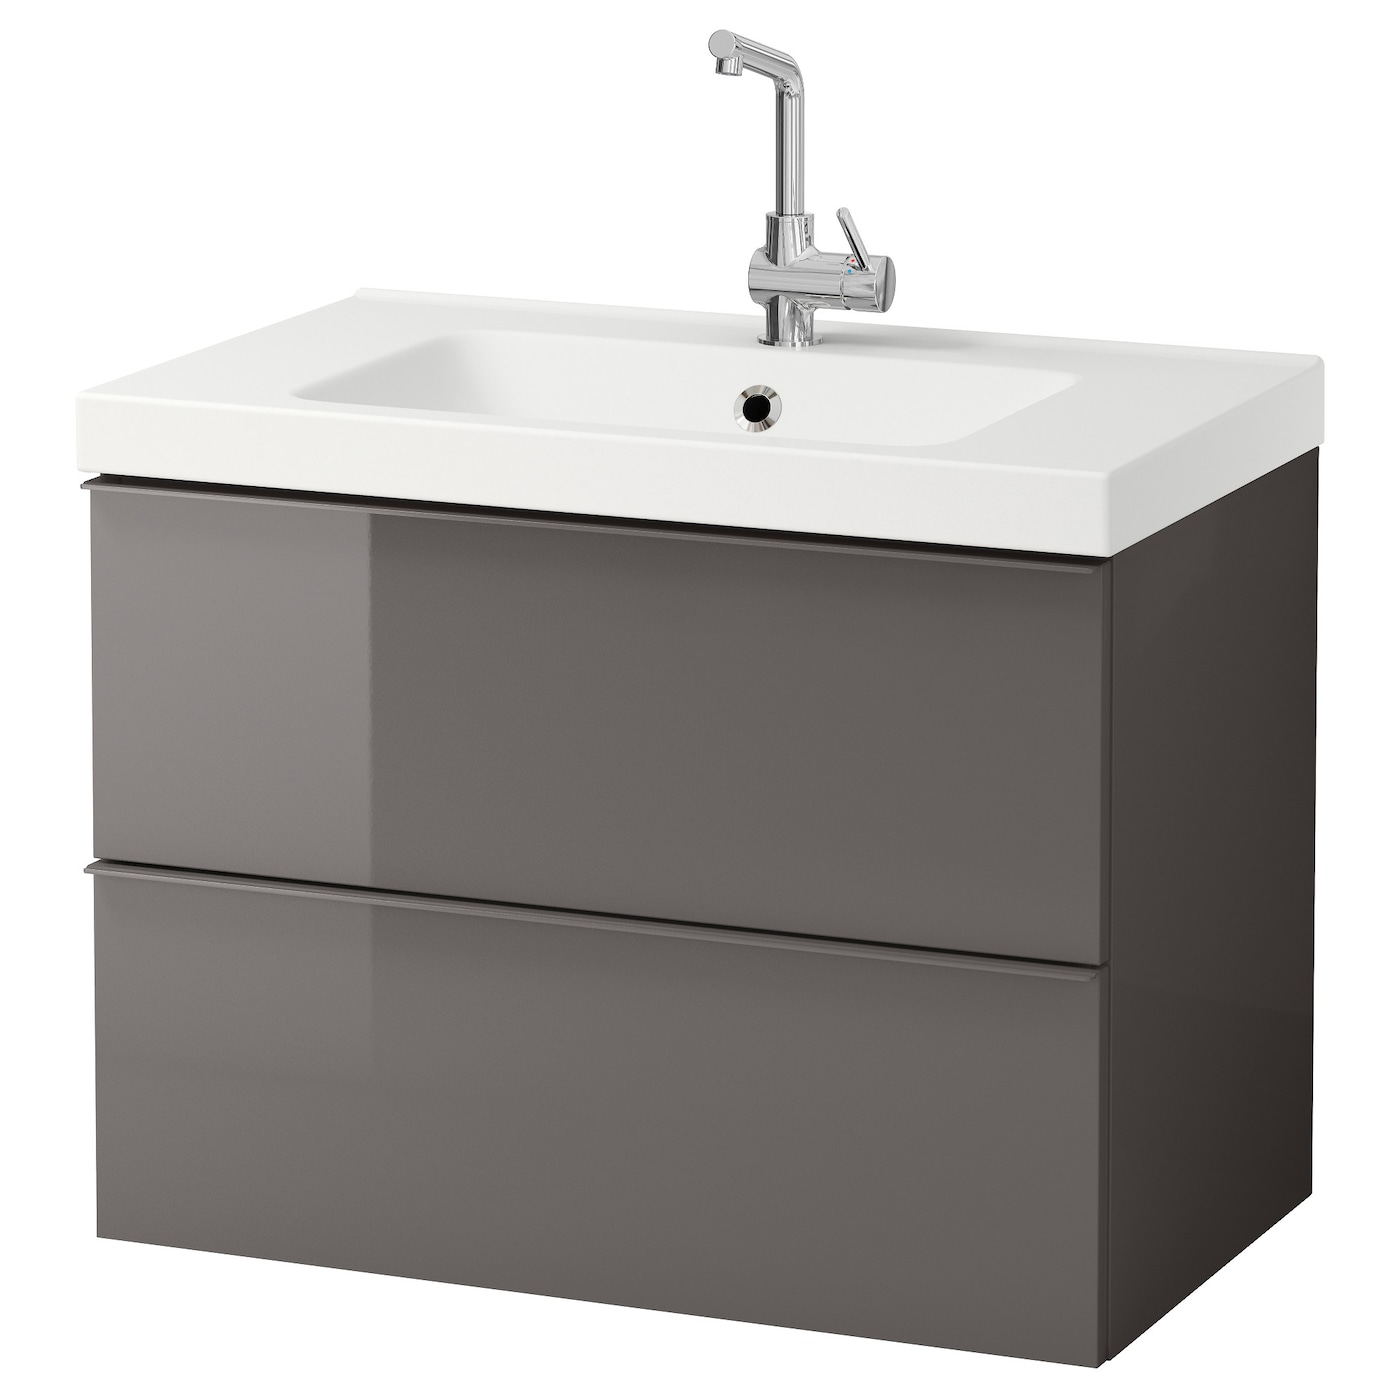 bathroom sink units ikea odensvik godmorgon wash stand with 2 drawers high gloss 16596